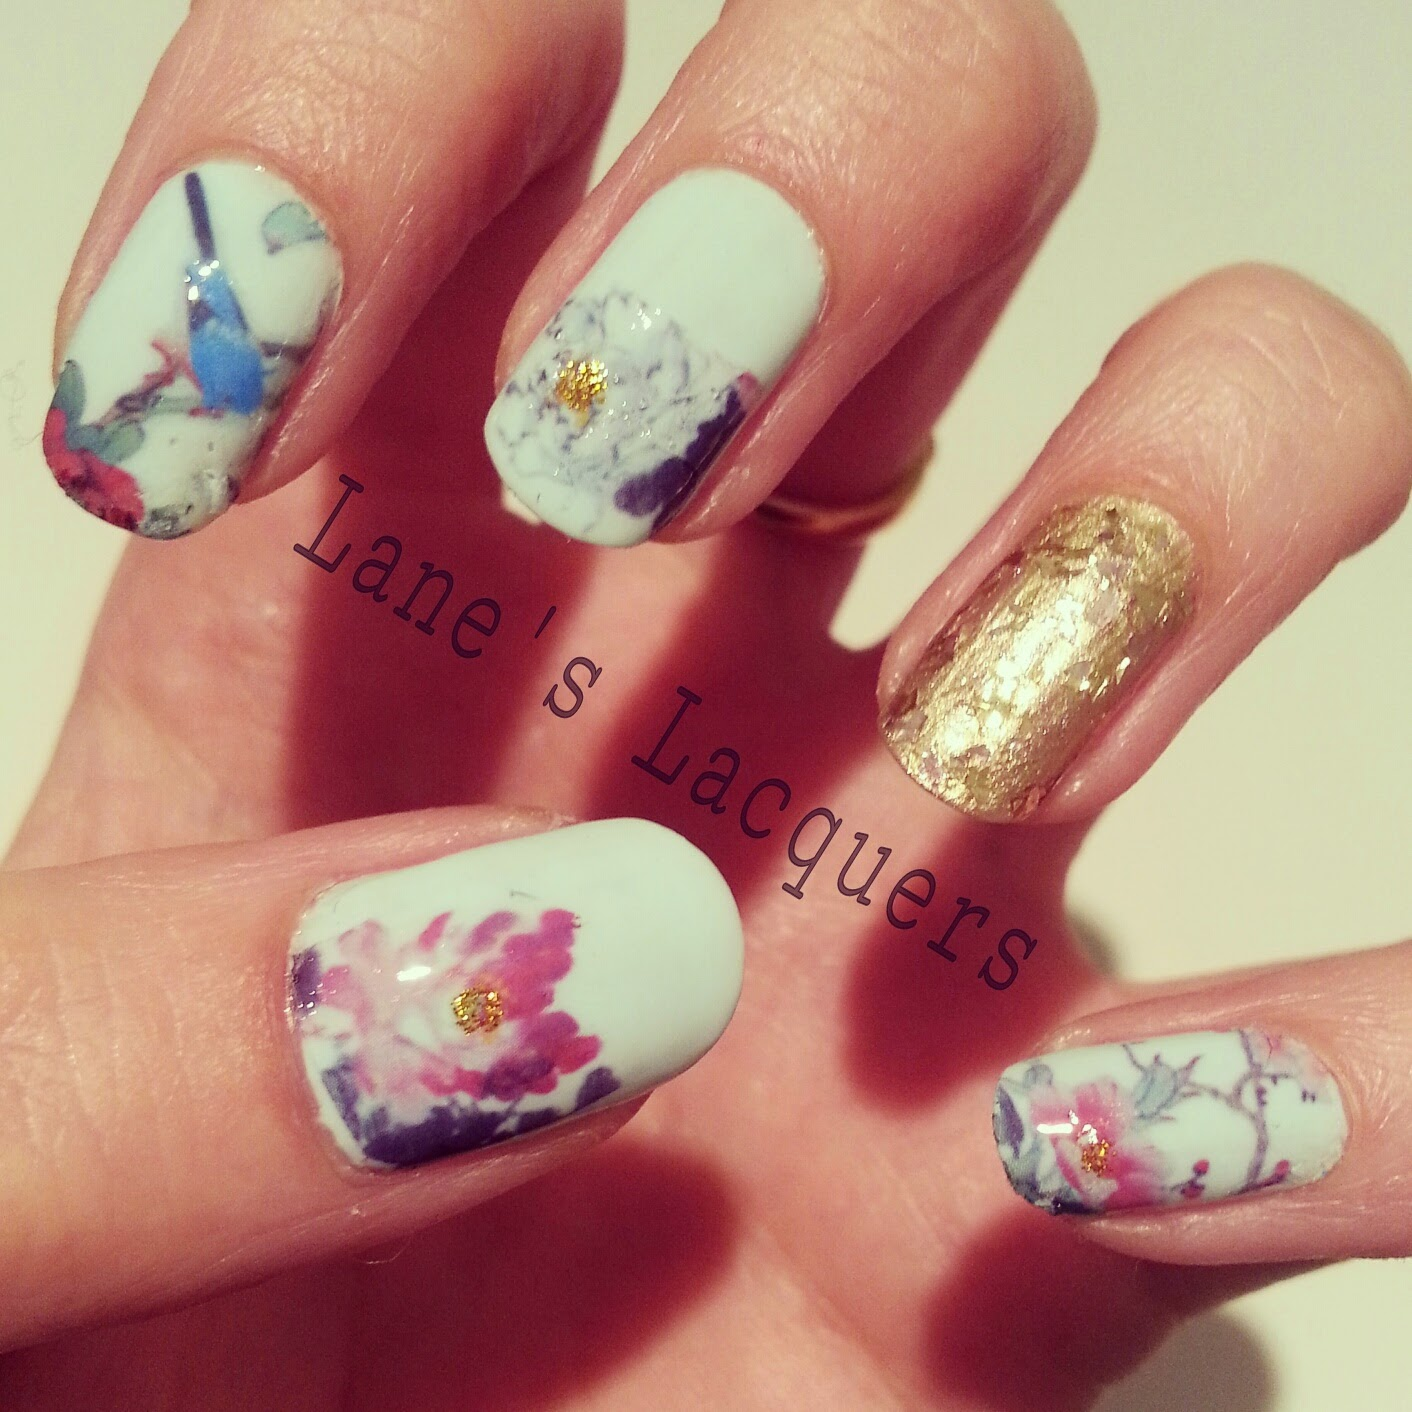 she-sells-sea-shells-floral-water-transfer-nail-art